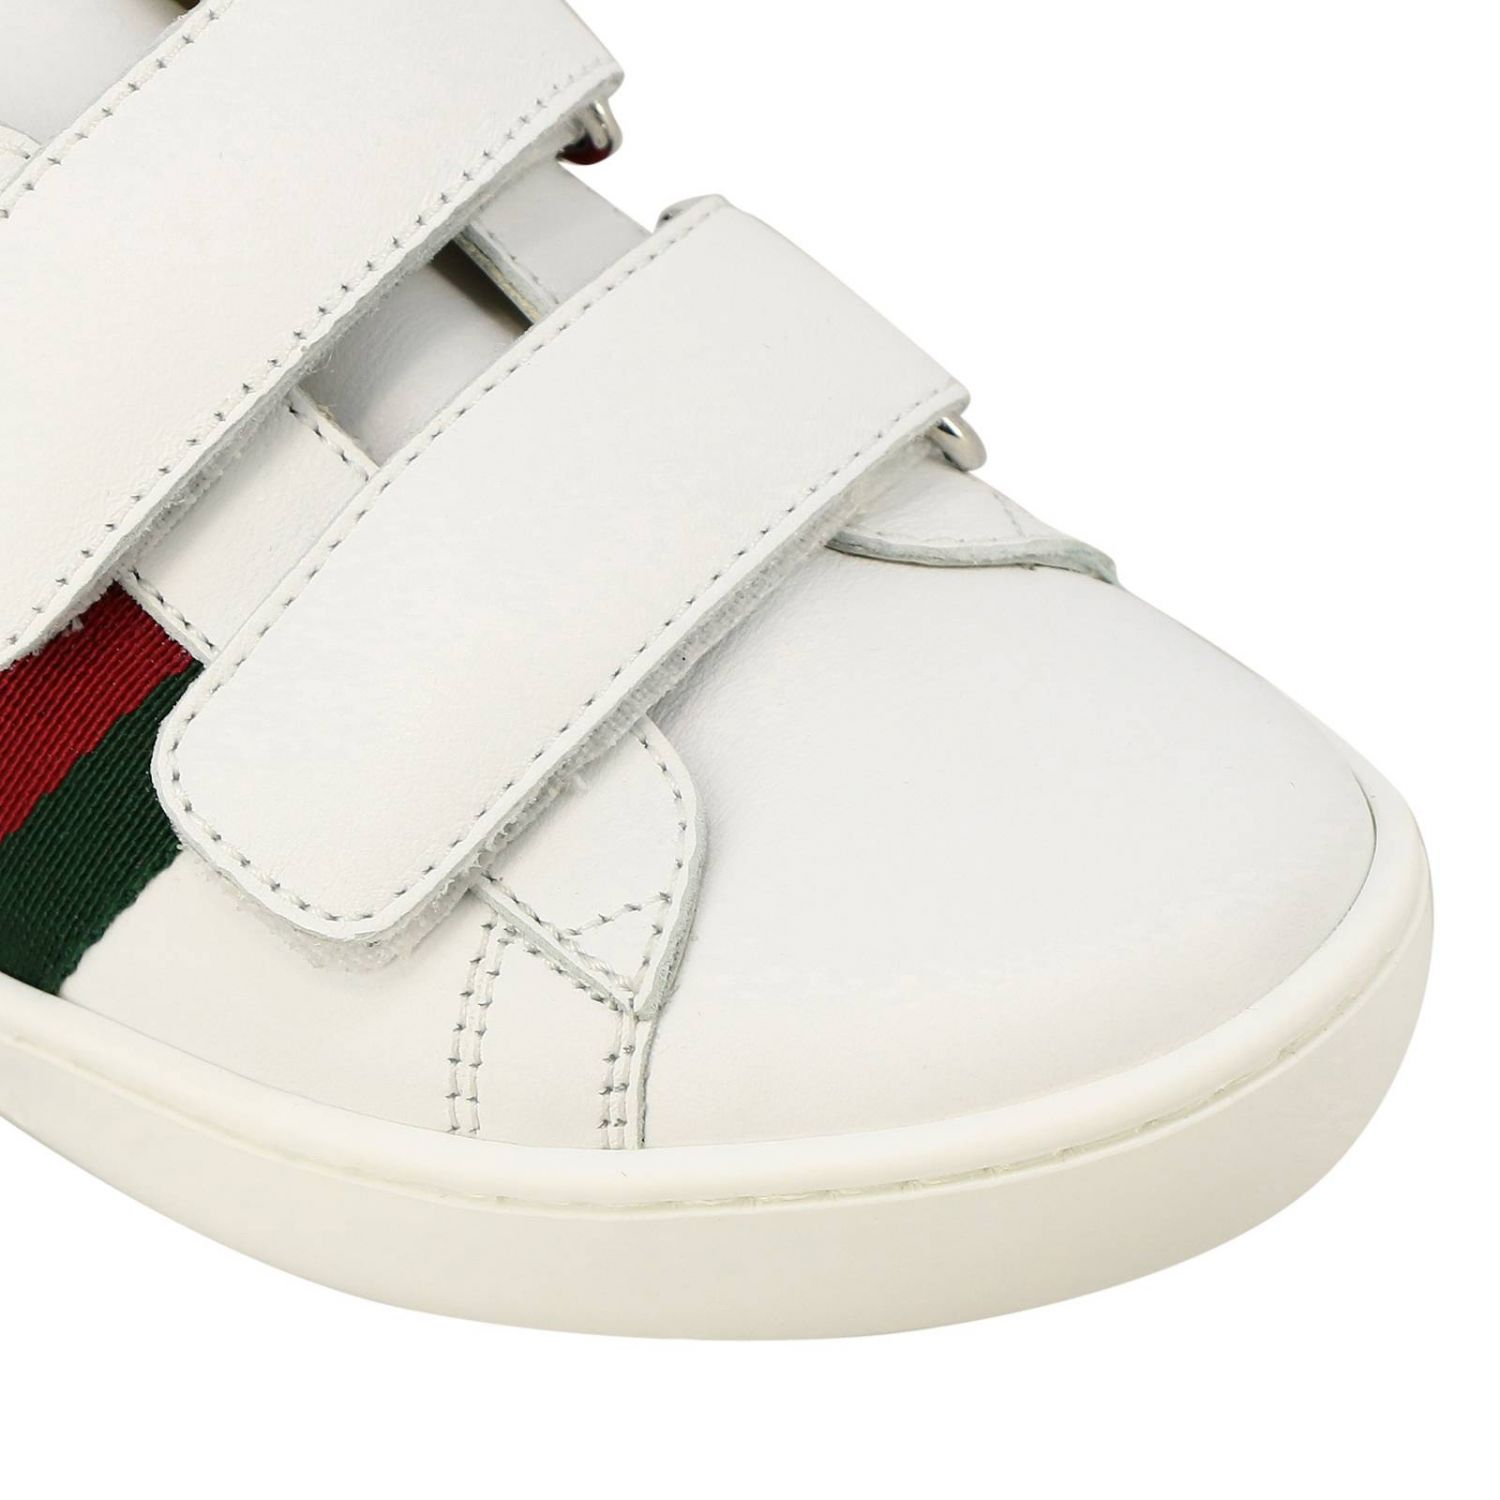 Zapatillas de cuero Ace Gucci con correas web y hebillas dobles blanco 3